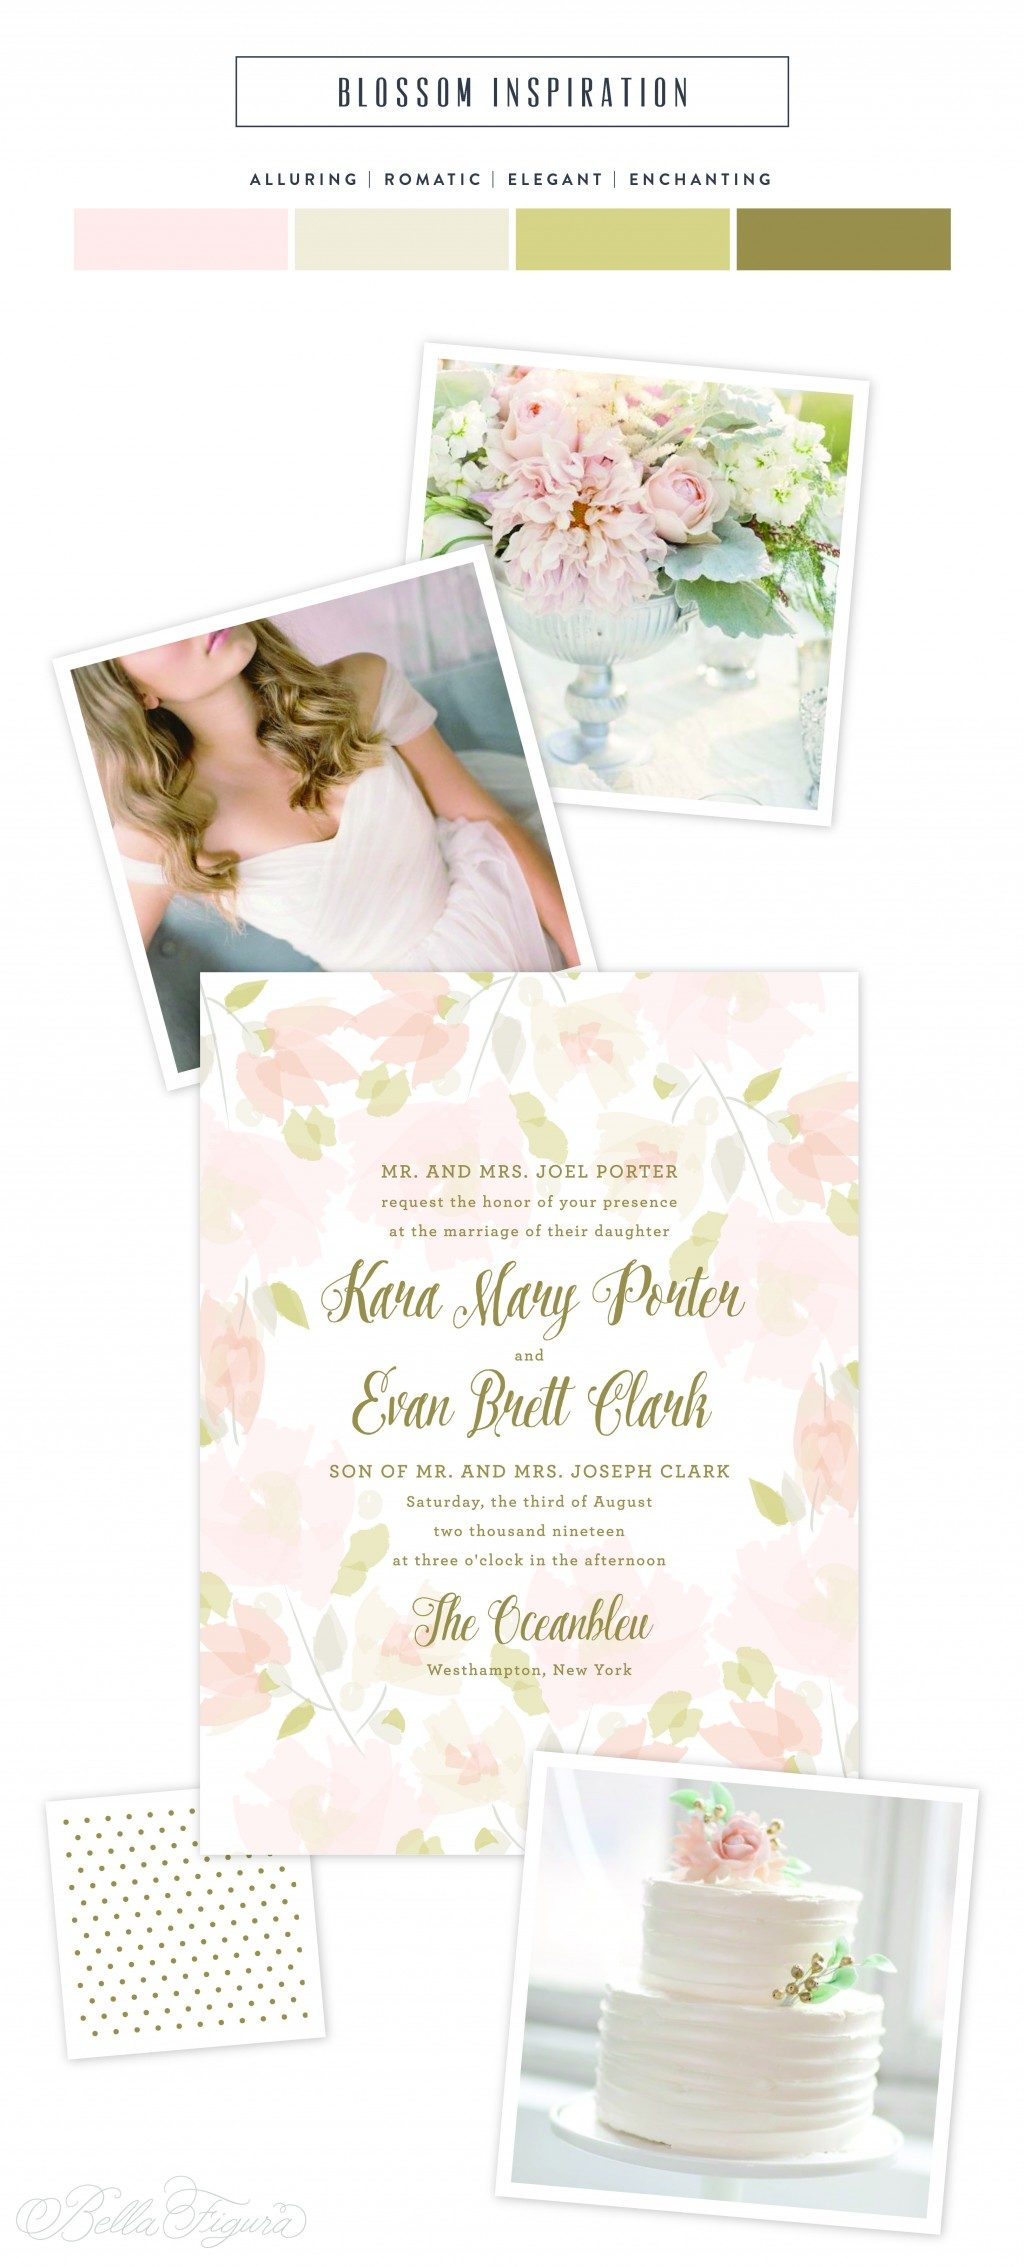 Blossom floral wedding invitation inspiration from Bella Figura